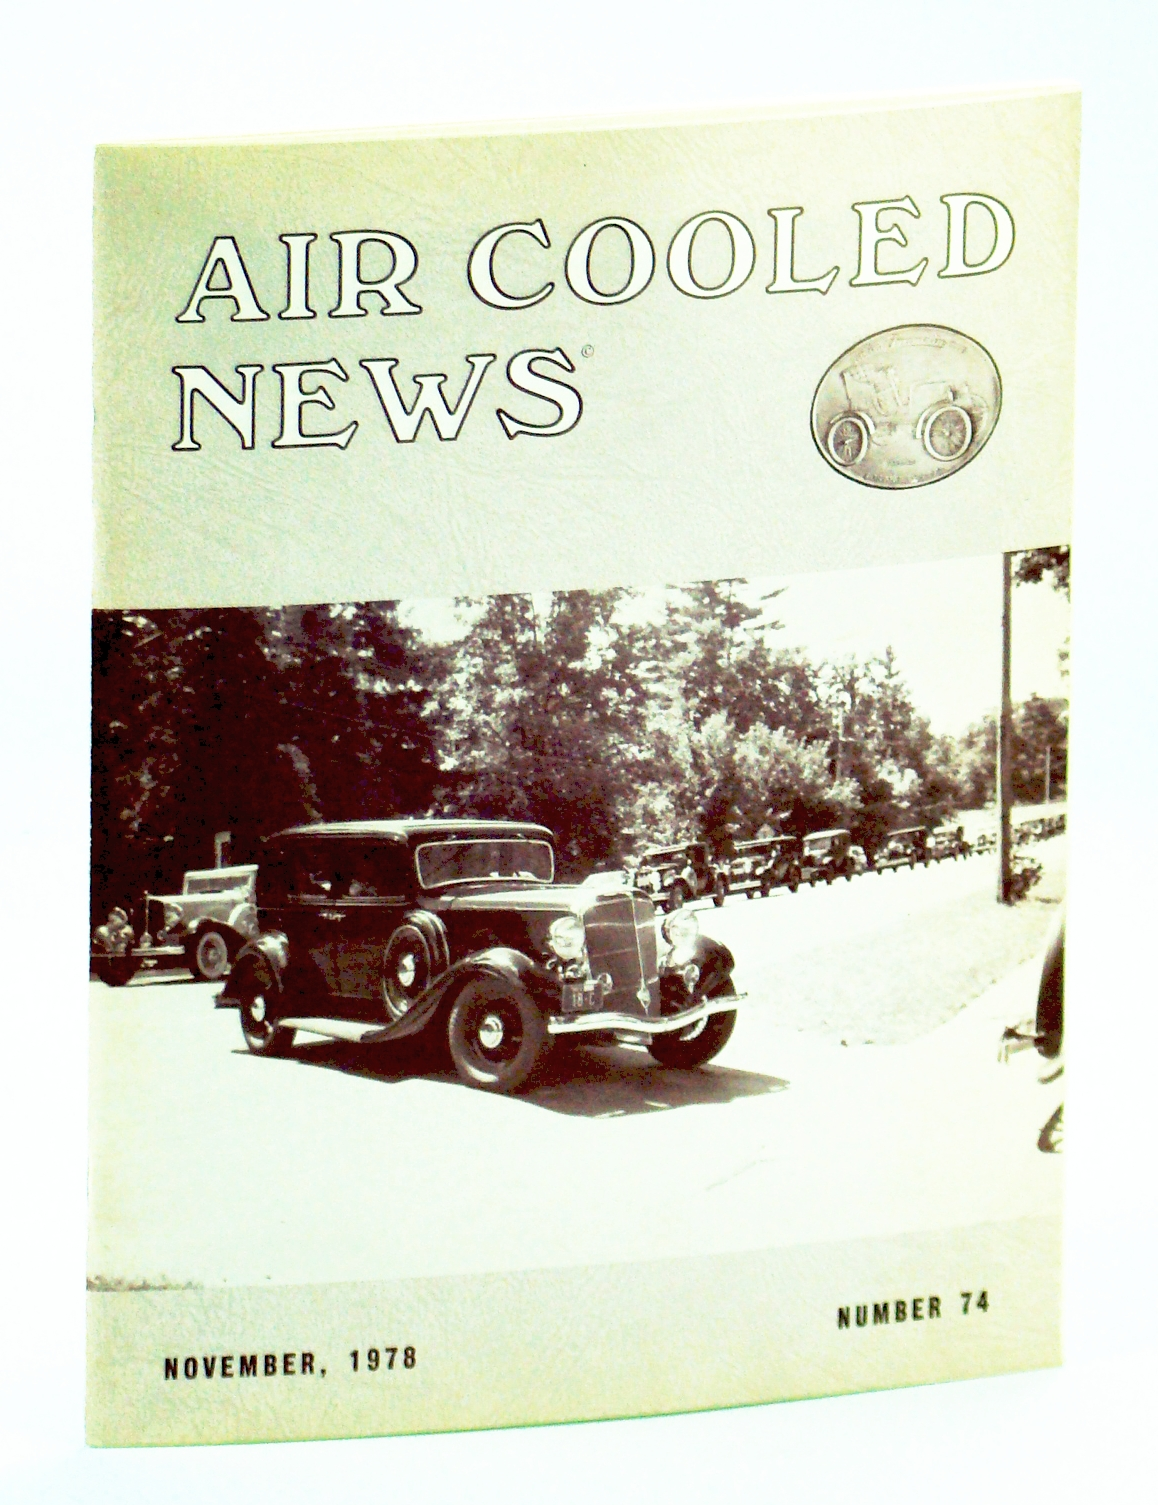 Image for Air Cooled News, Number 74, November [Nov.], 1978 , Vol. XXV, No. 2 - Emil Gislason Photos from Seattle